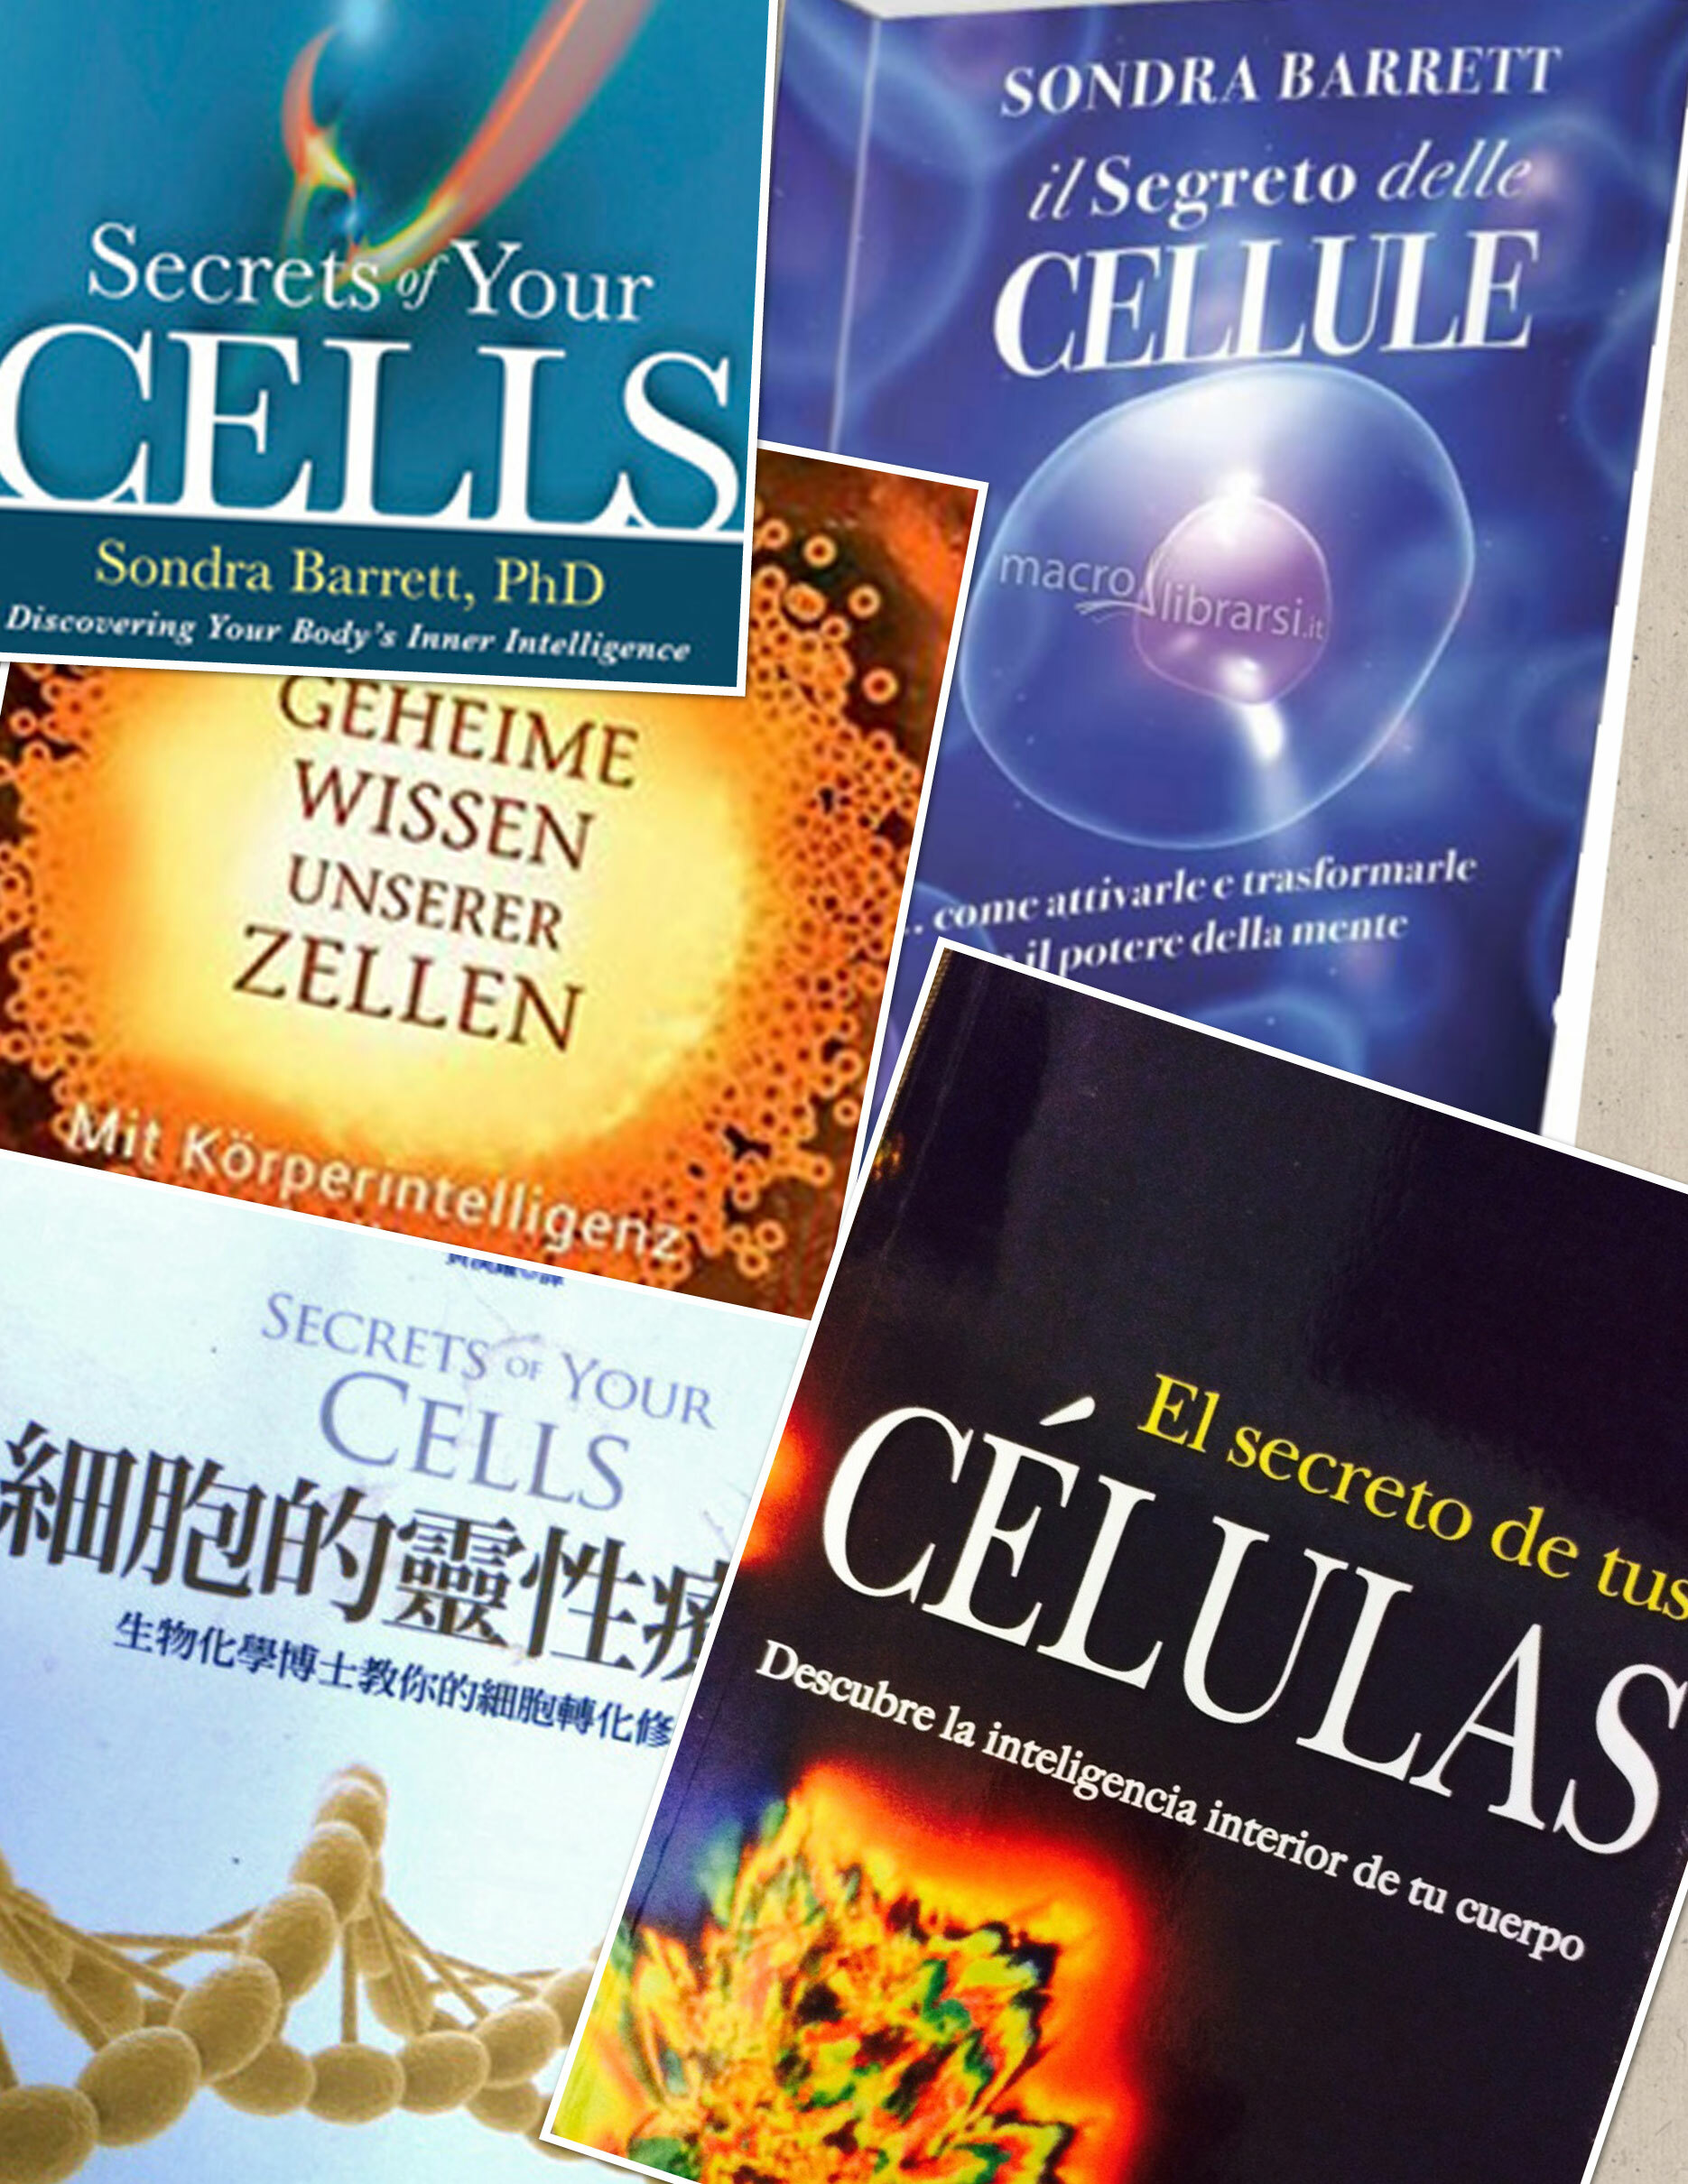 Secrets of Your Cells BOOK CLUB COURSE